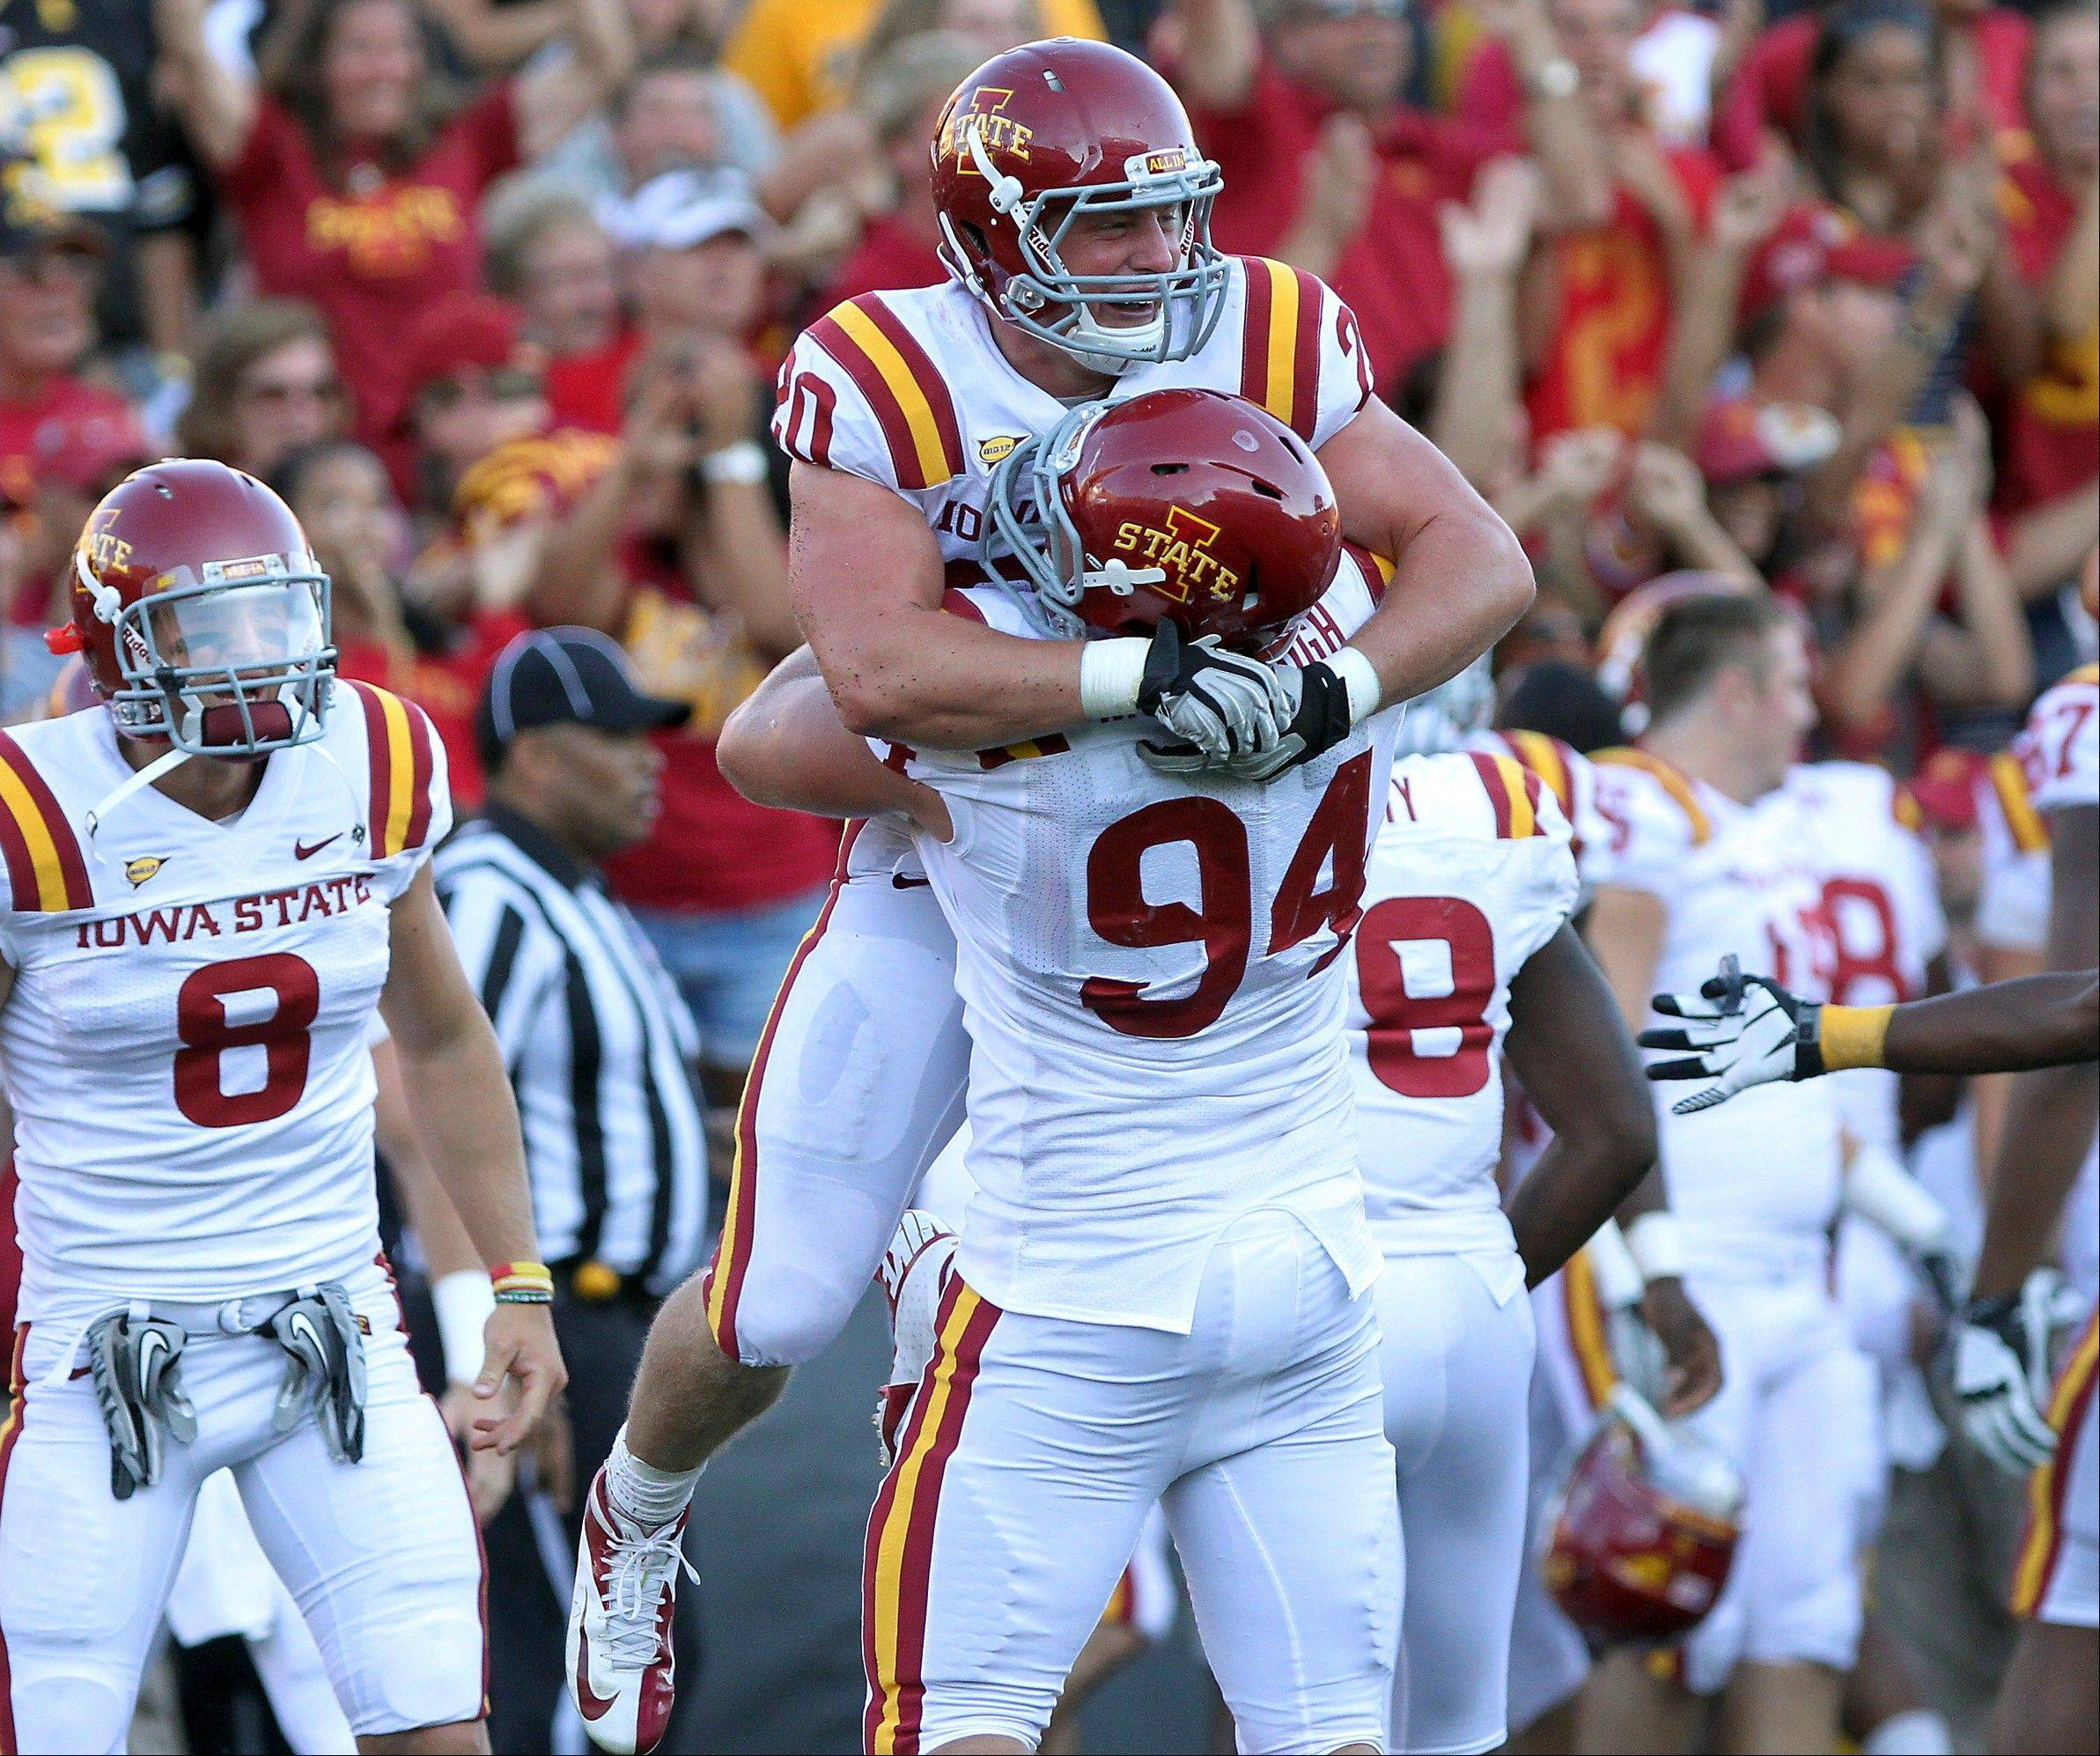 Iowa State's Jake McDonough (94) hugs Jake Knott after Knott intercepted an Iowa pass during the fourth quarter last Saturday in Iowa City. The Cyclones host Western Illinois this week.